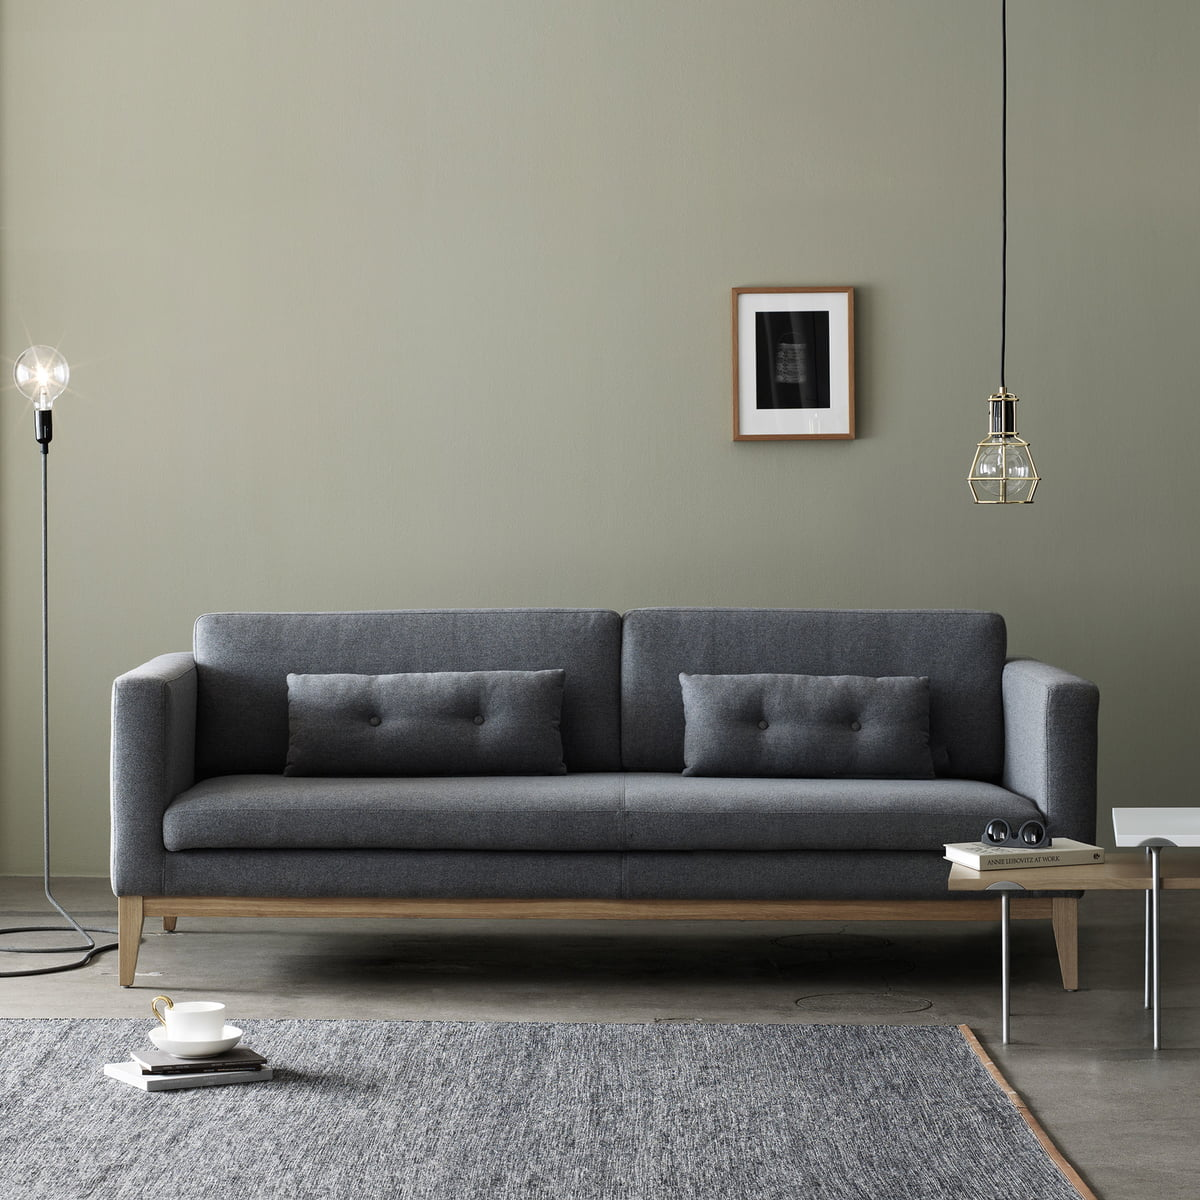 day sofa von design house stockholm online kaufen. Black Bedroom Furniture Sets. Home Design Ideas